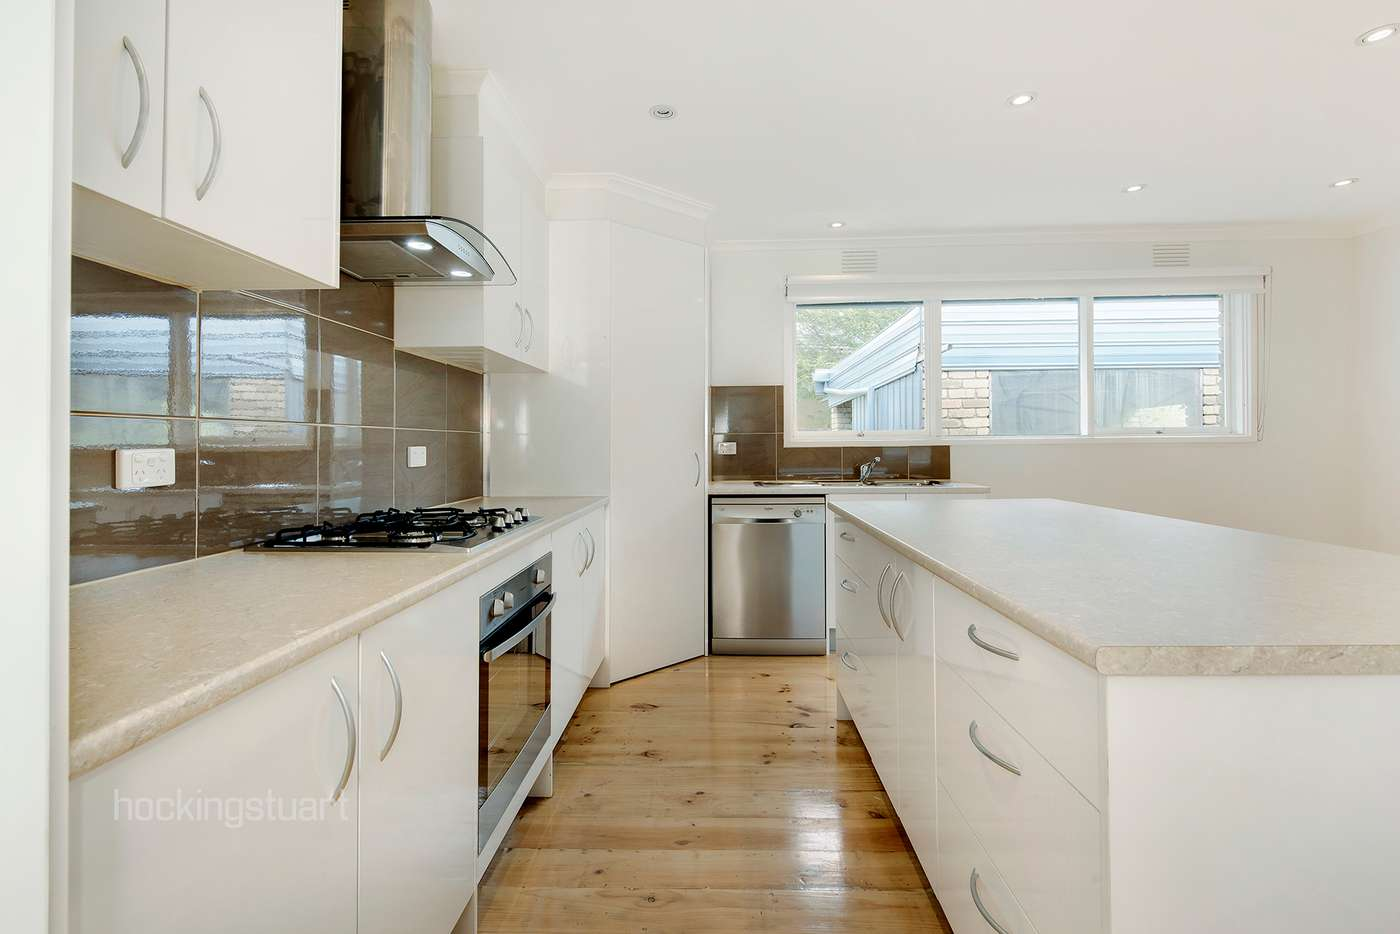 Main view of Homely house listing, 3 Paton Street, Frankston, VIC 3199